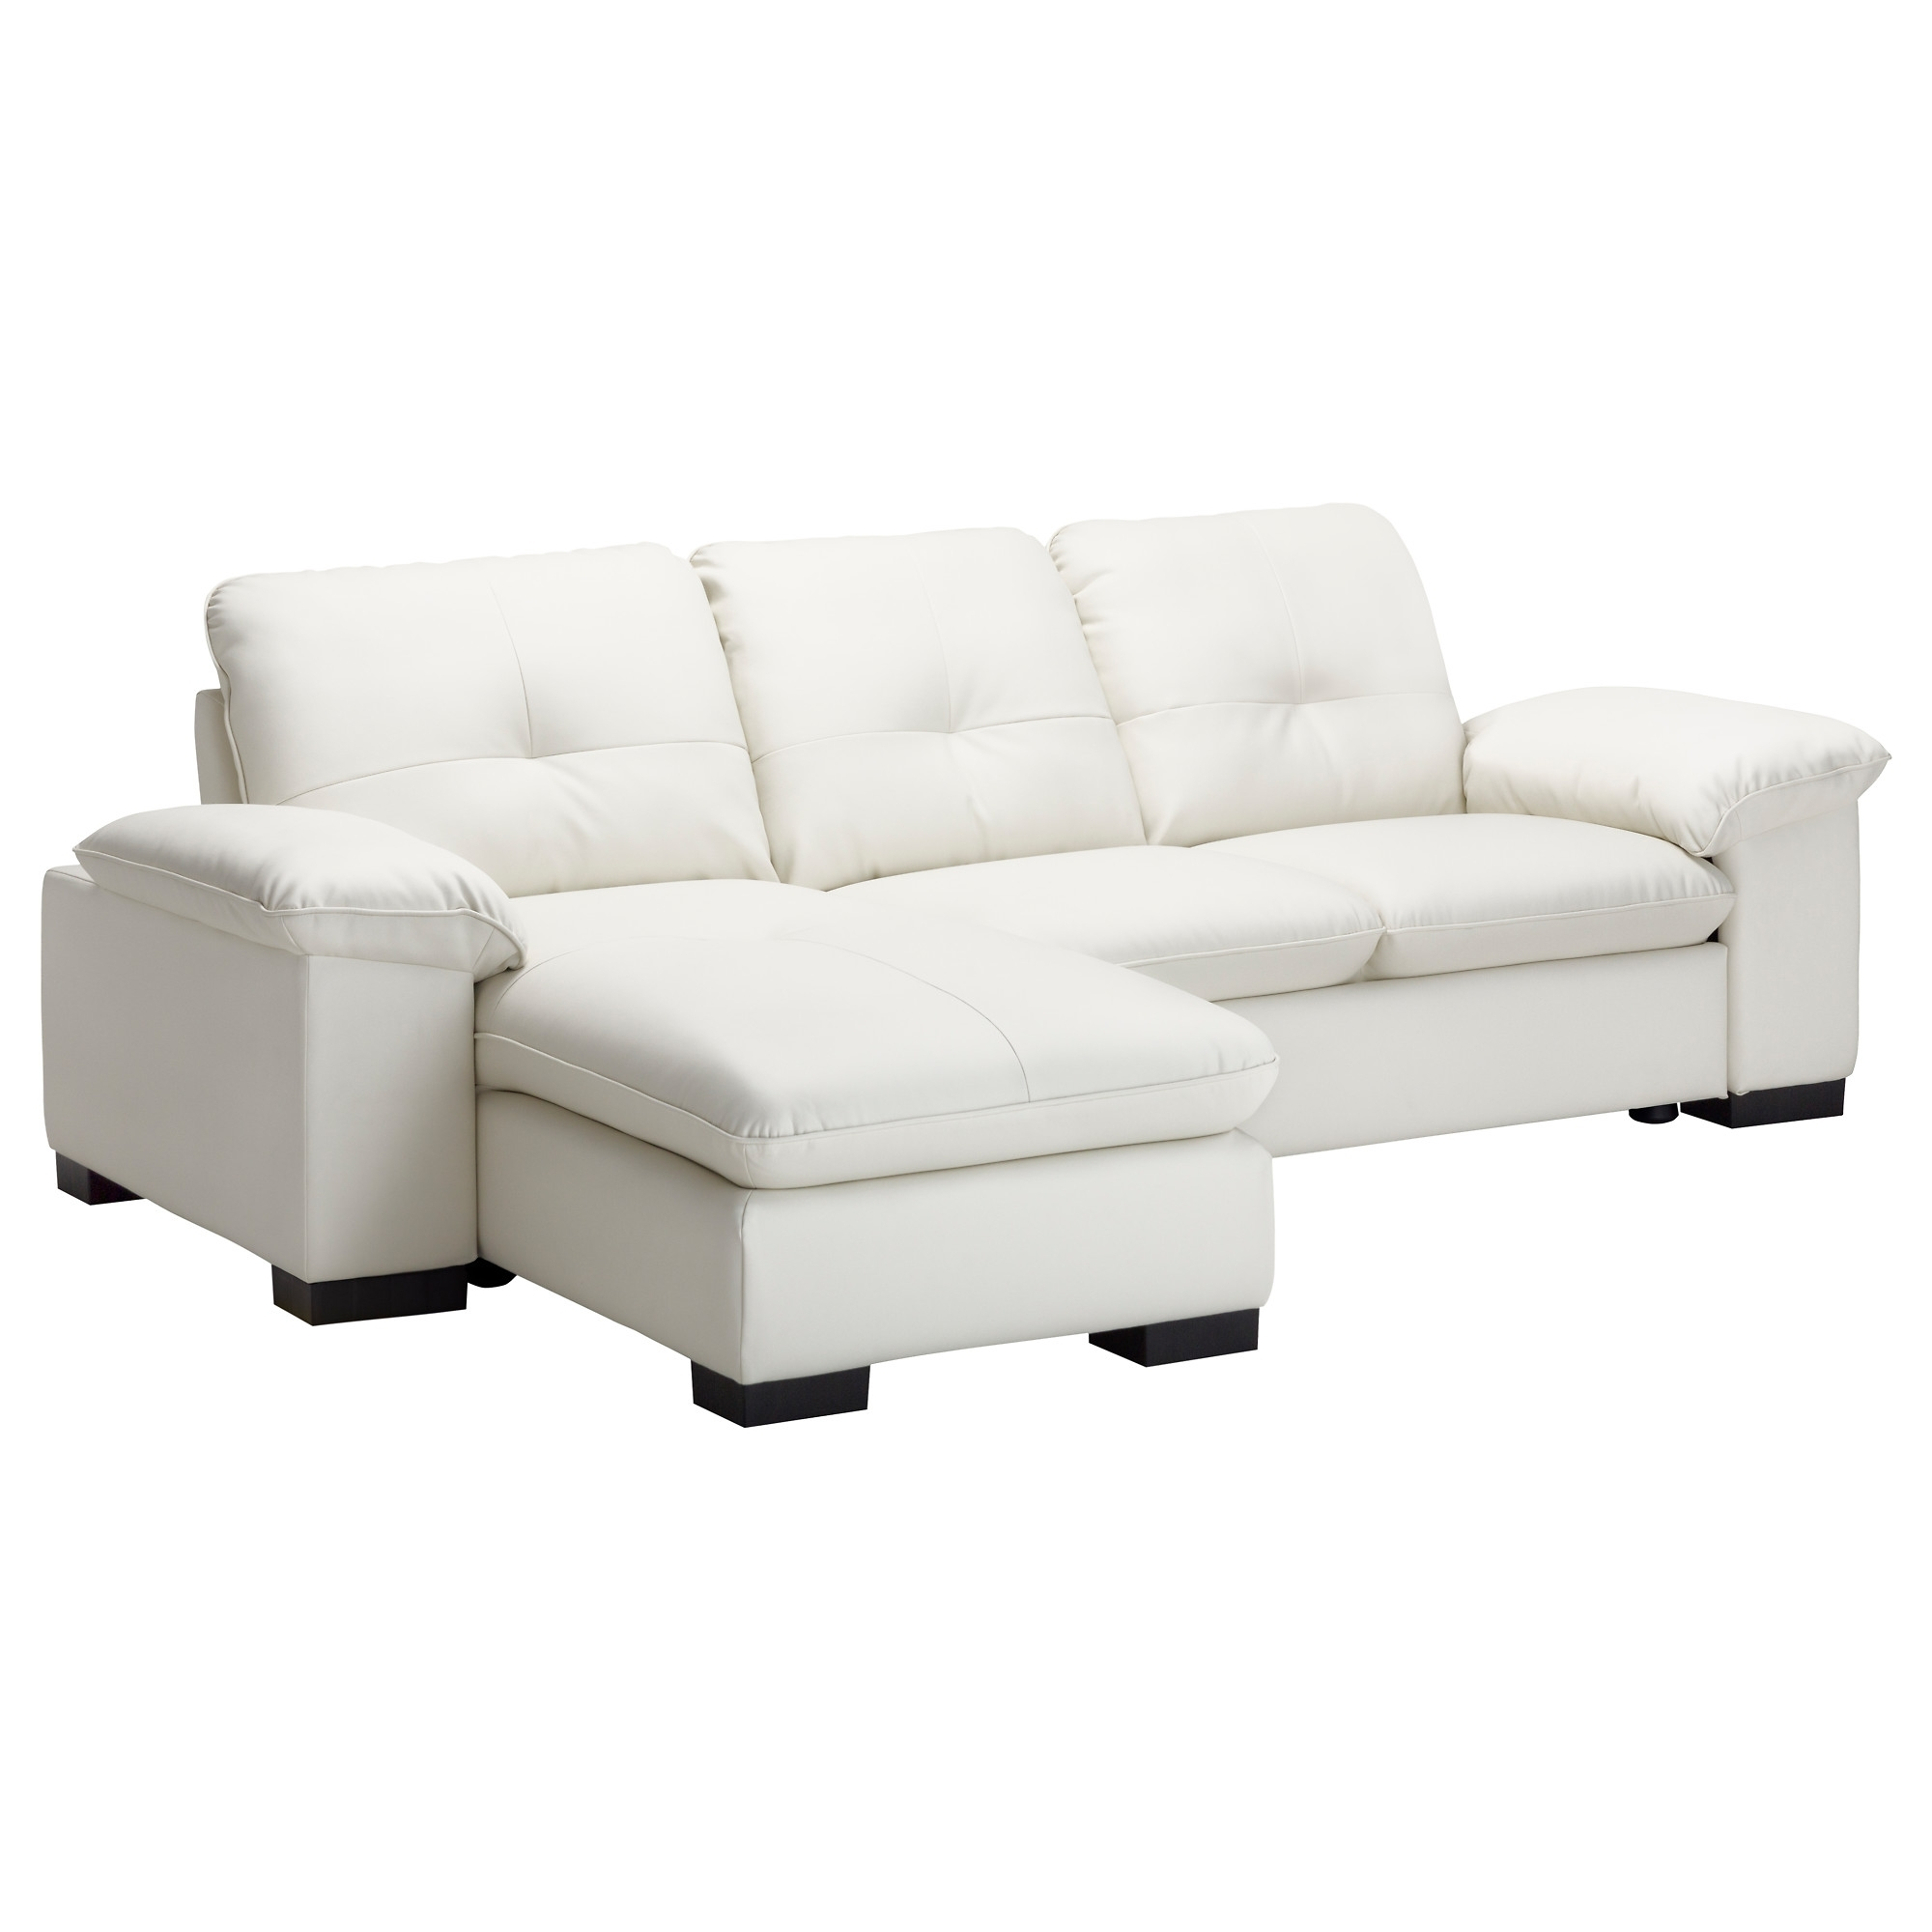 Ideas: Amazing Ikea Loveseat With New Contemporary Fixing Ability With Regard To Well Known Small Loveseats With Chaise (Gallery 13 of 15)